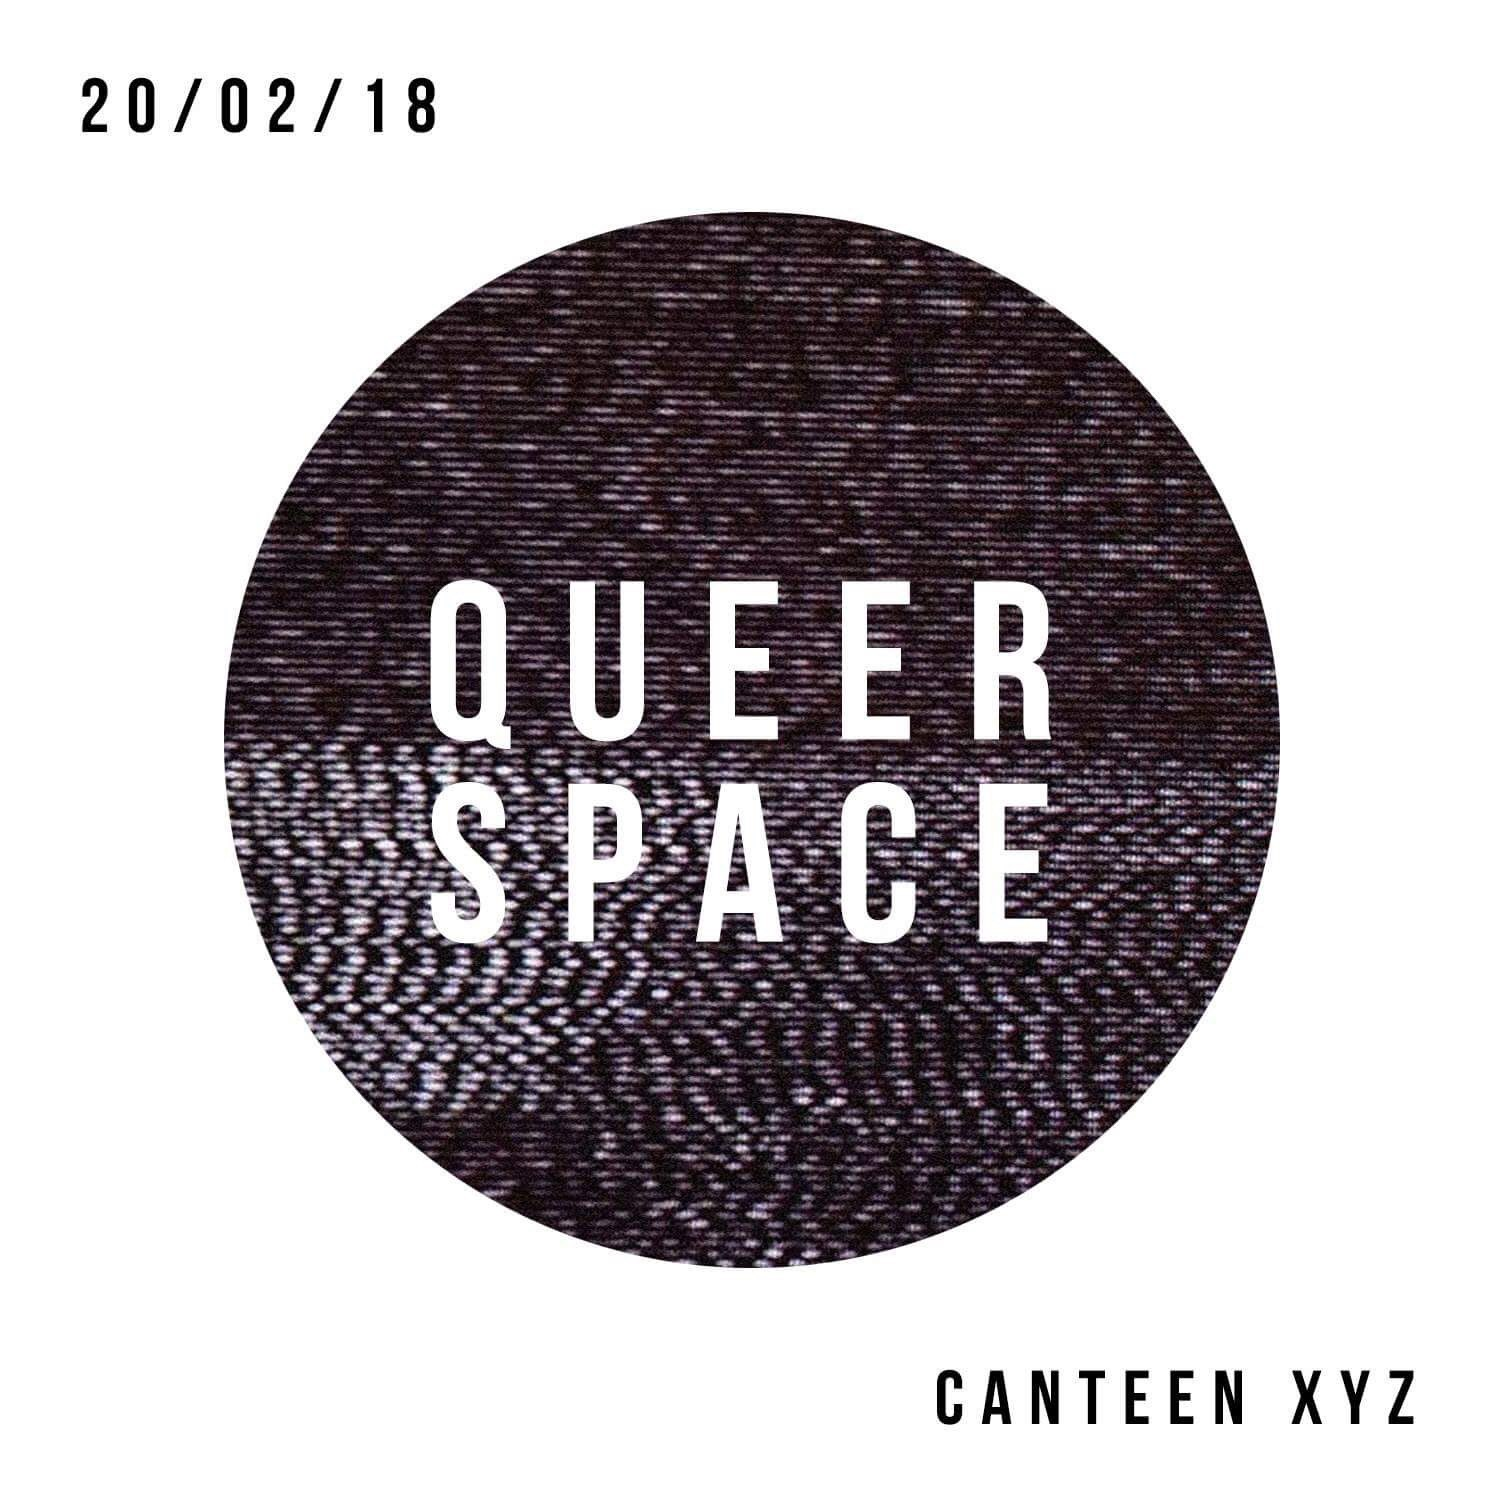 картинка Queerspace 26.12.2017